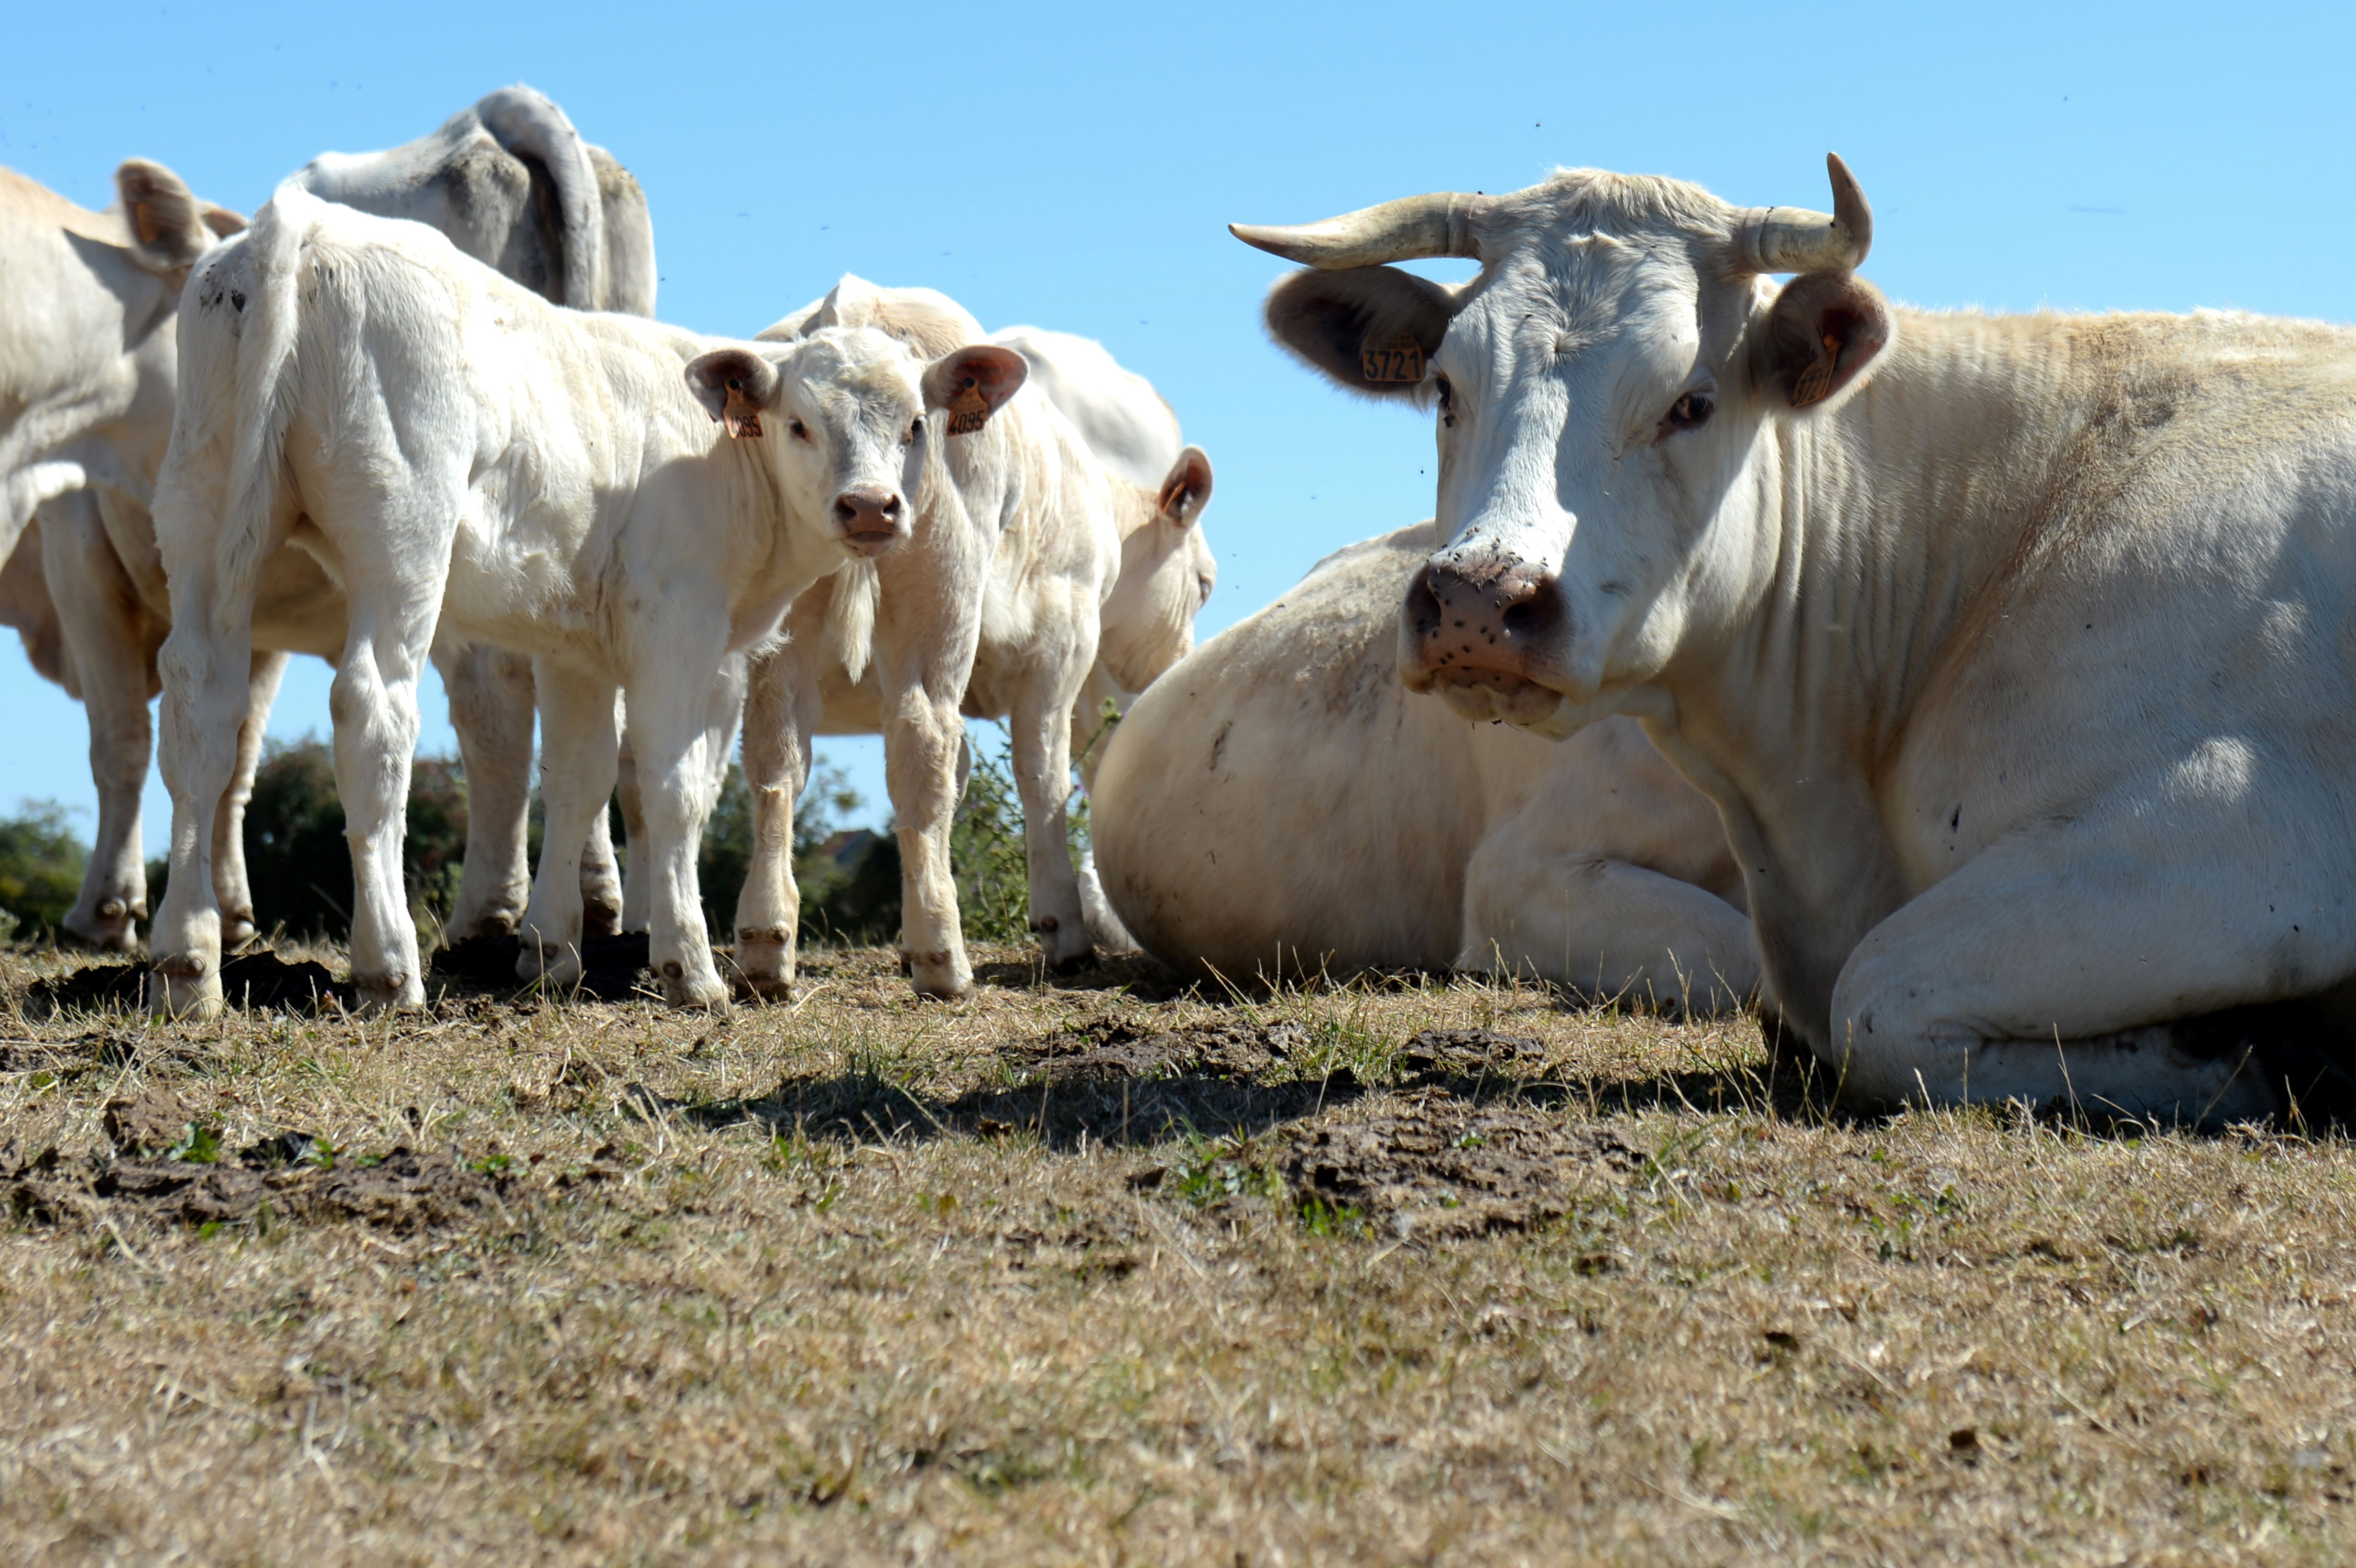 FRANCE-AGRICULTURE-WEATHER-ANIMALS-COWS